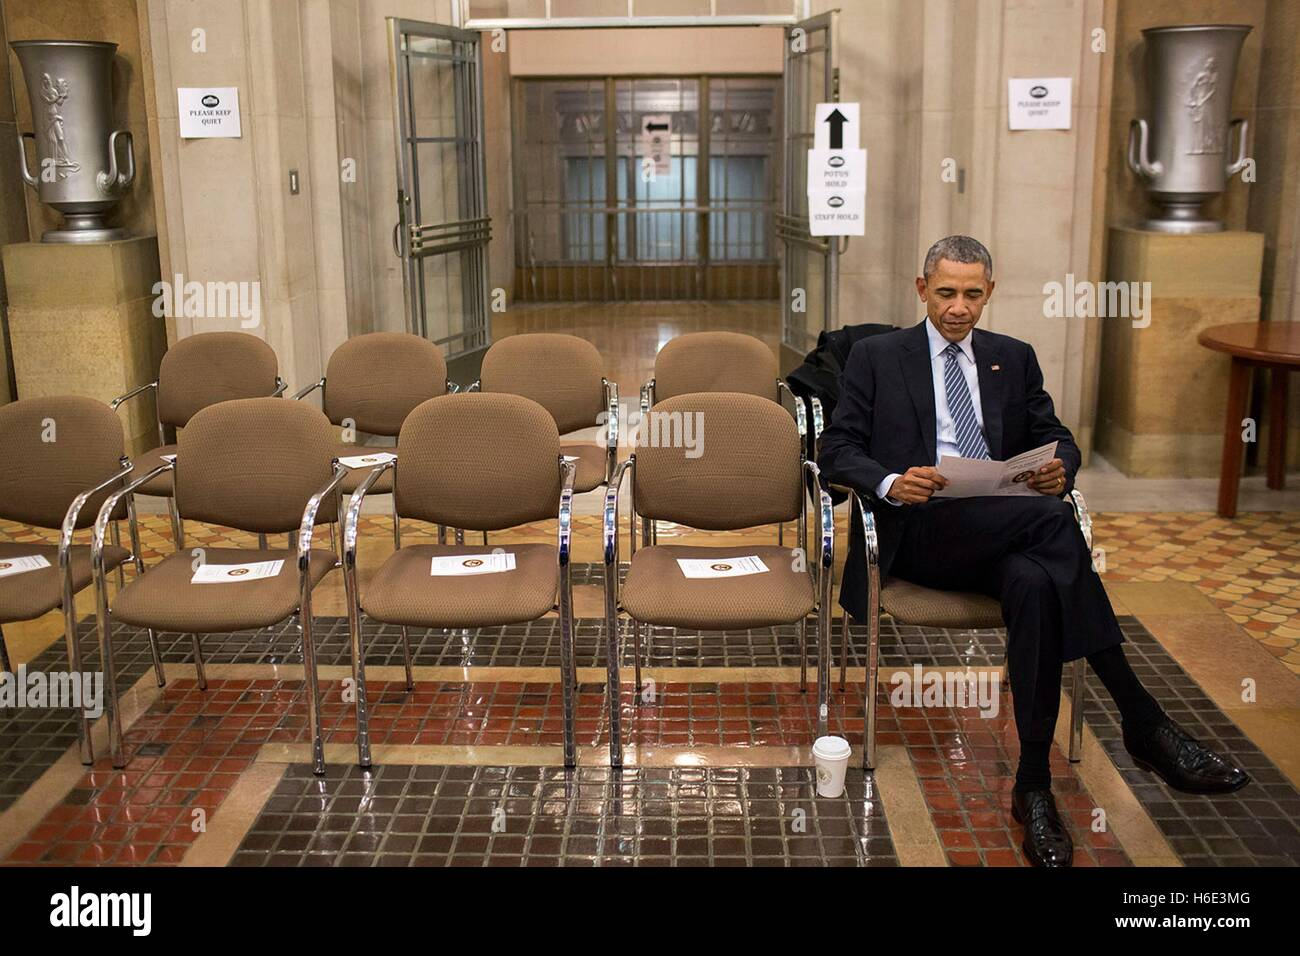 U.S. President Barack Obama reads a program before the portrait unveiling ceremony for Attorney General Eric Holder, - Stock Image